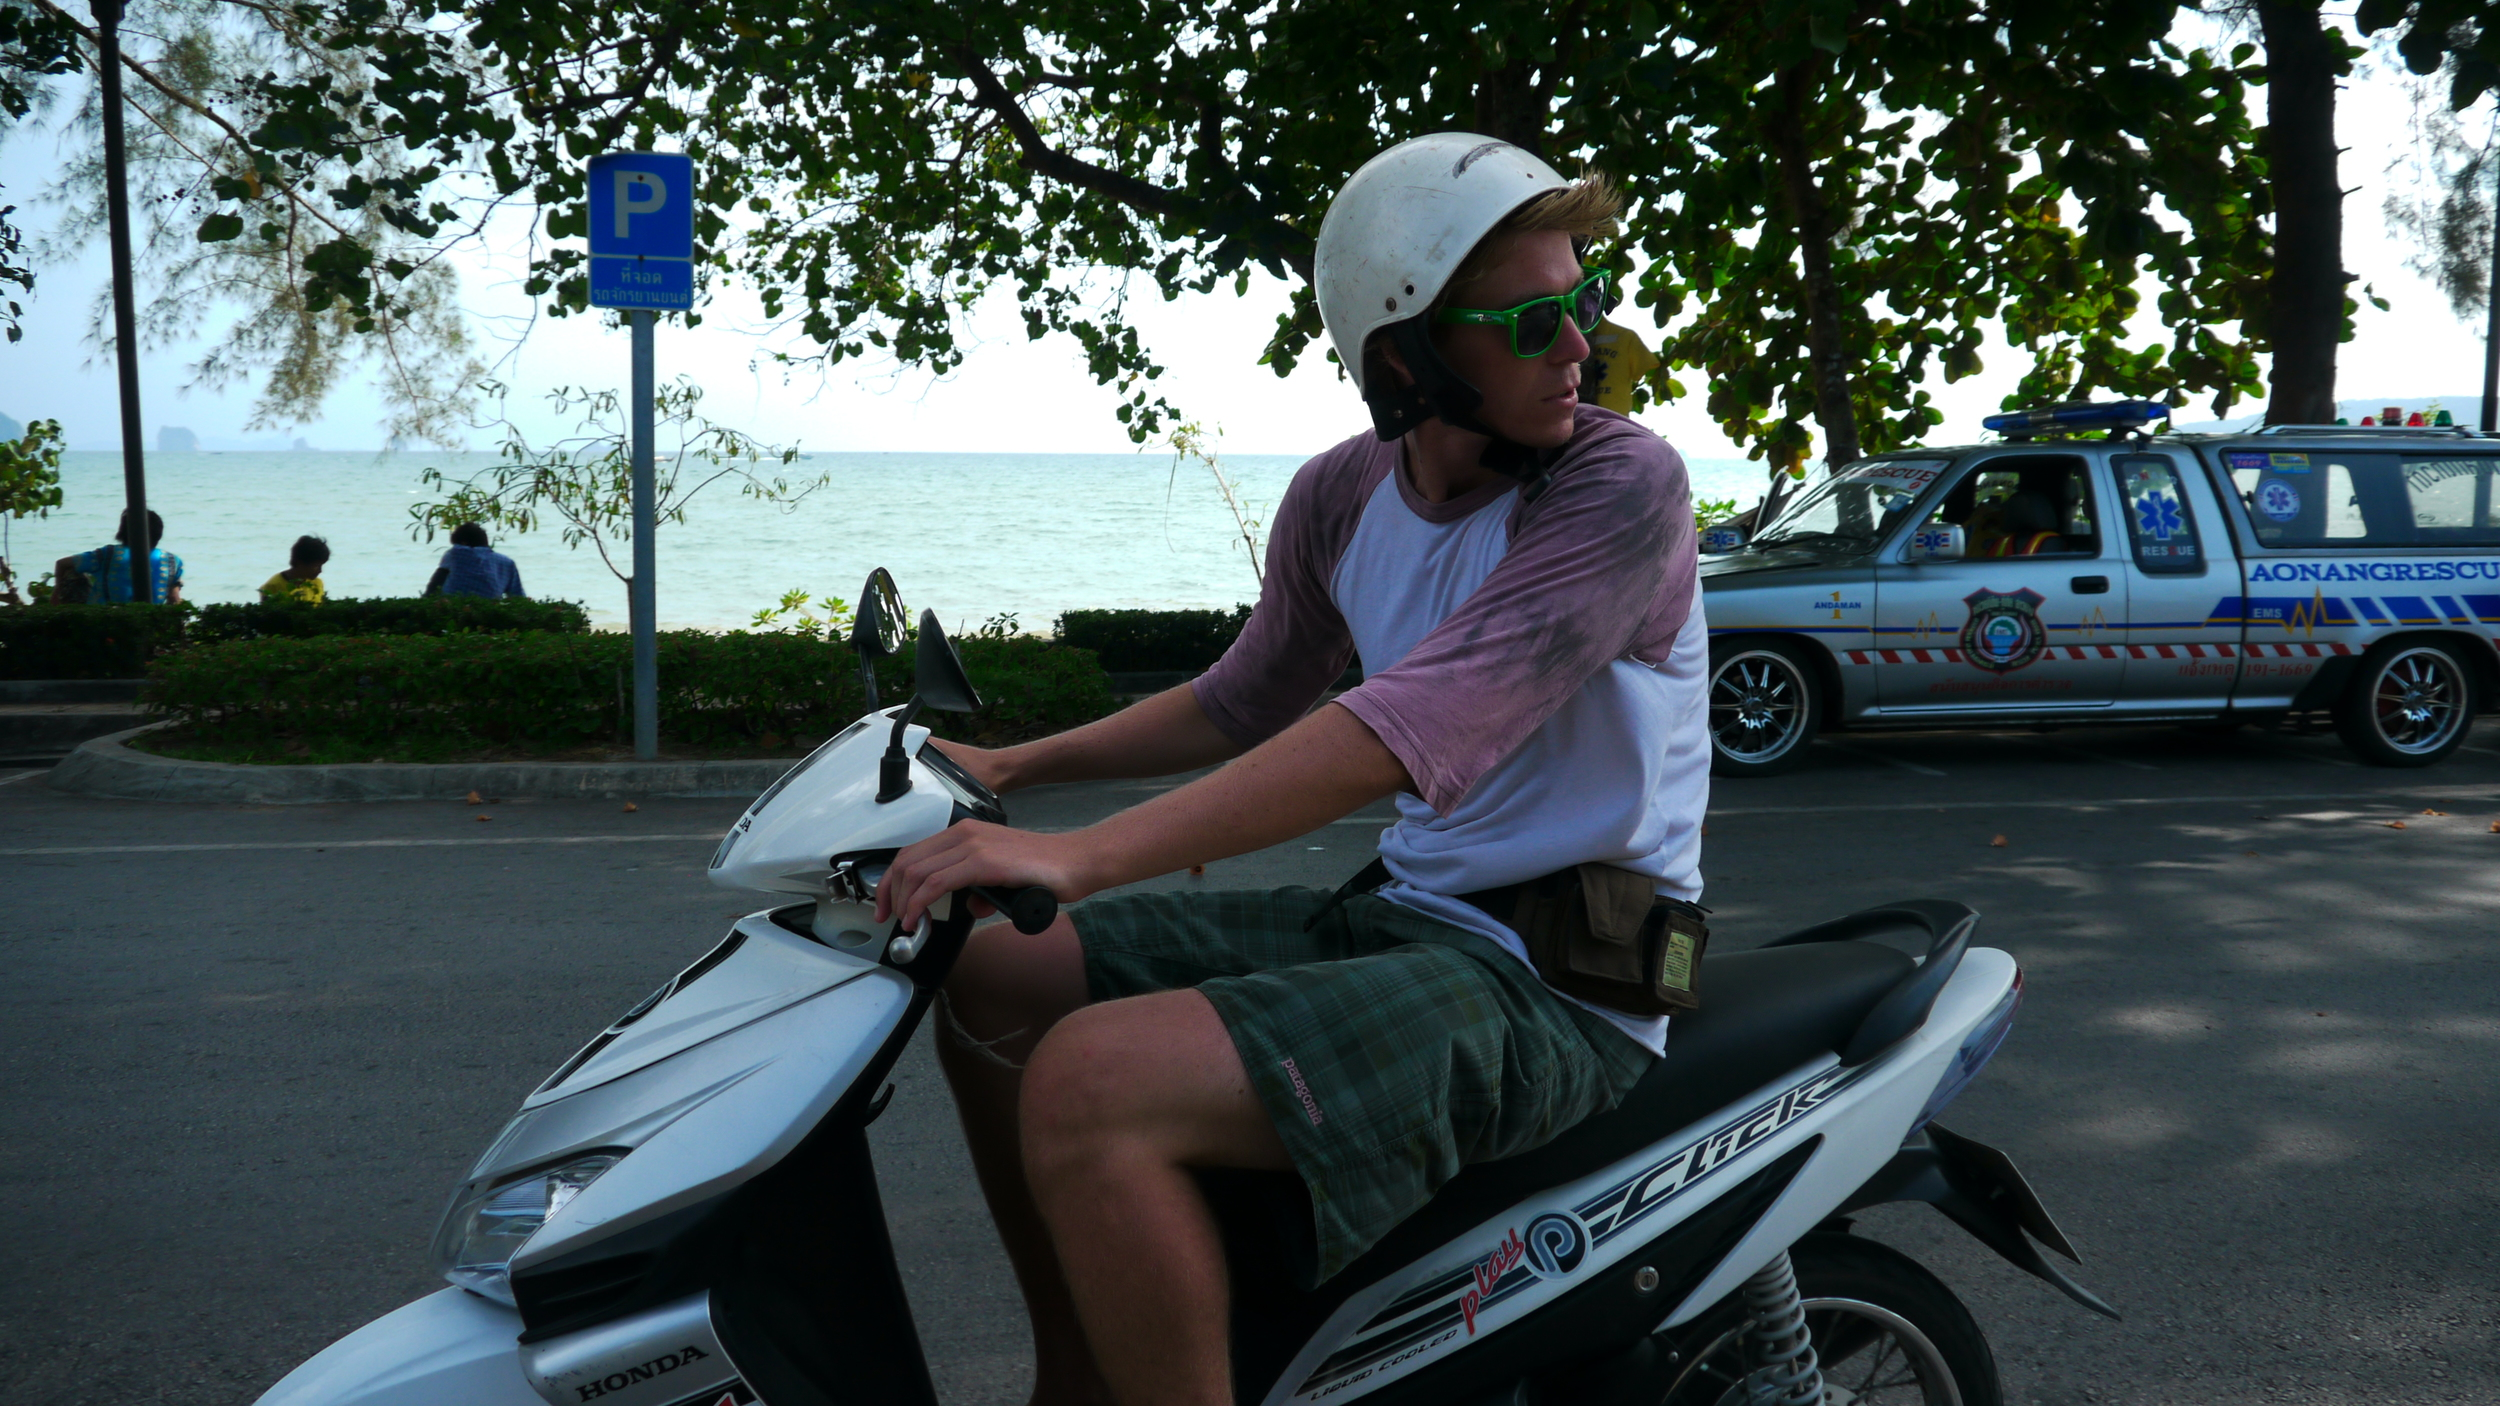 My friends and I rented mopeds and took them all over southwest Thailand.